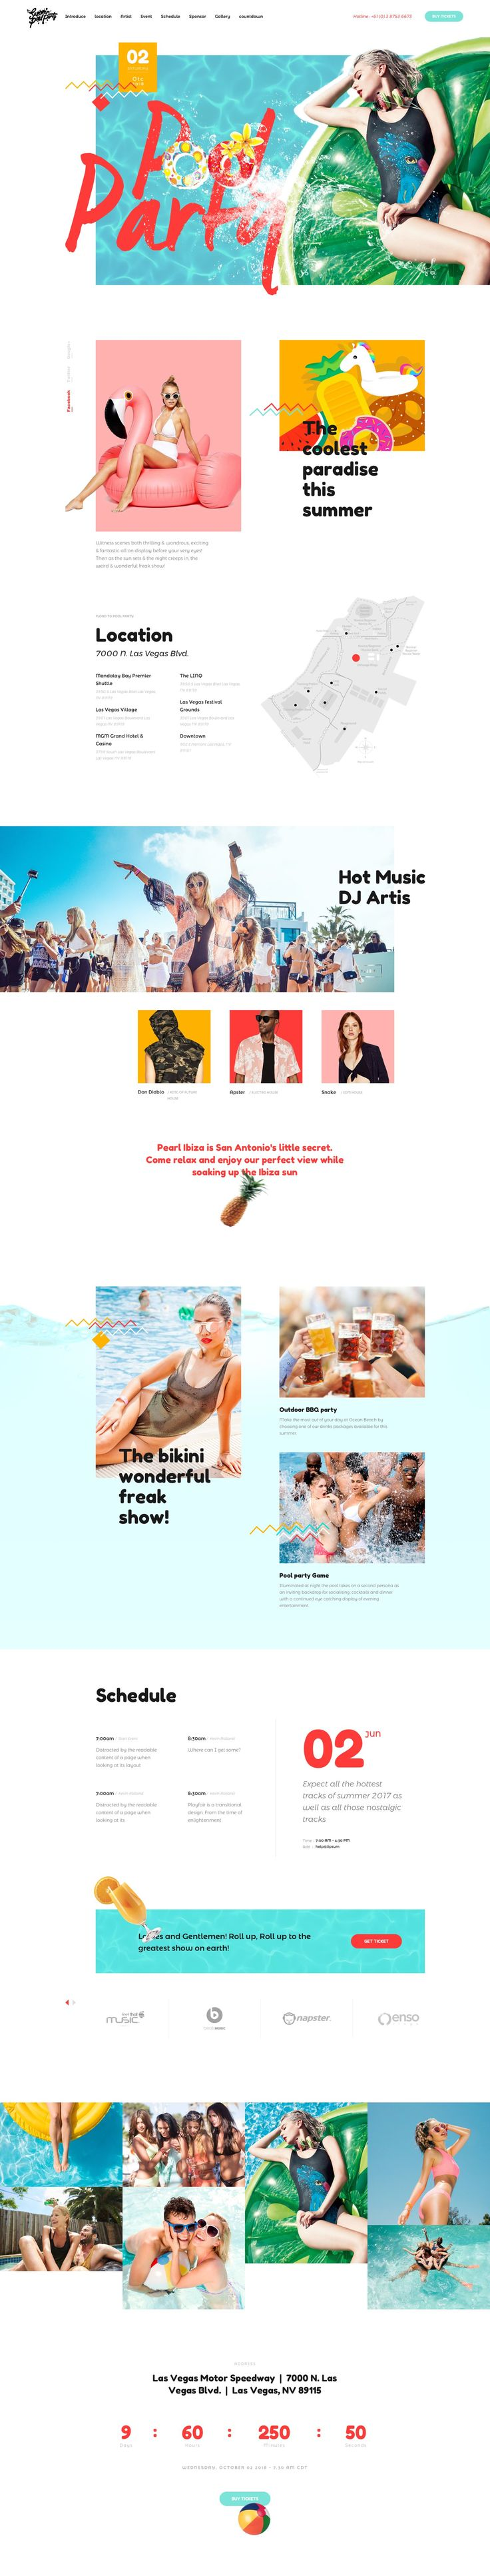 Summer Pool Party - Landing Page For Event - BeauPress